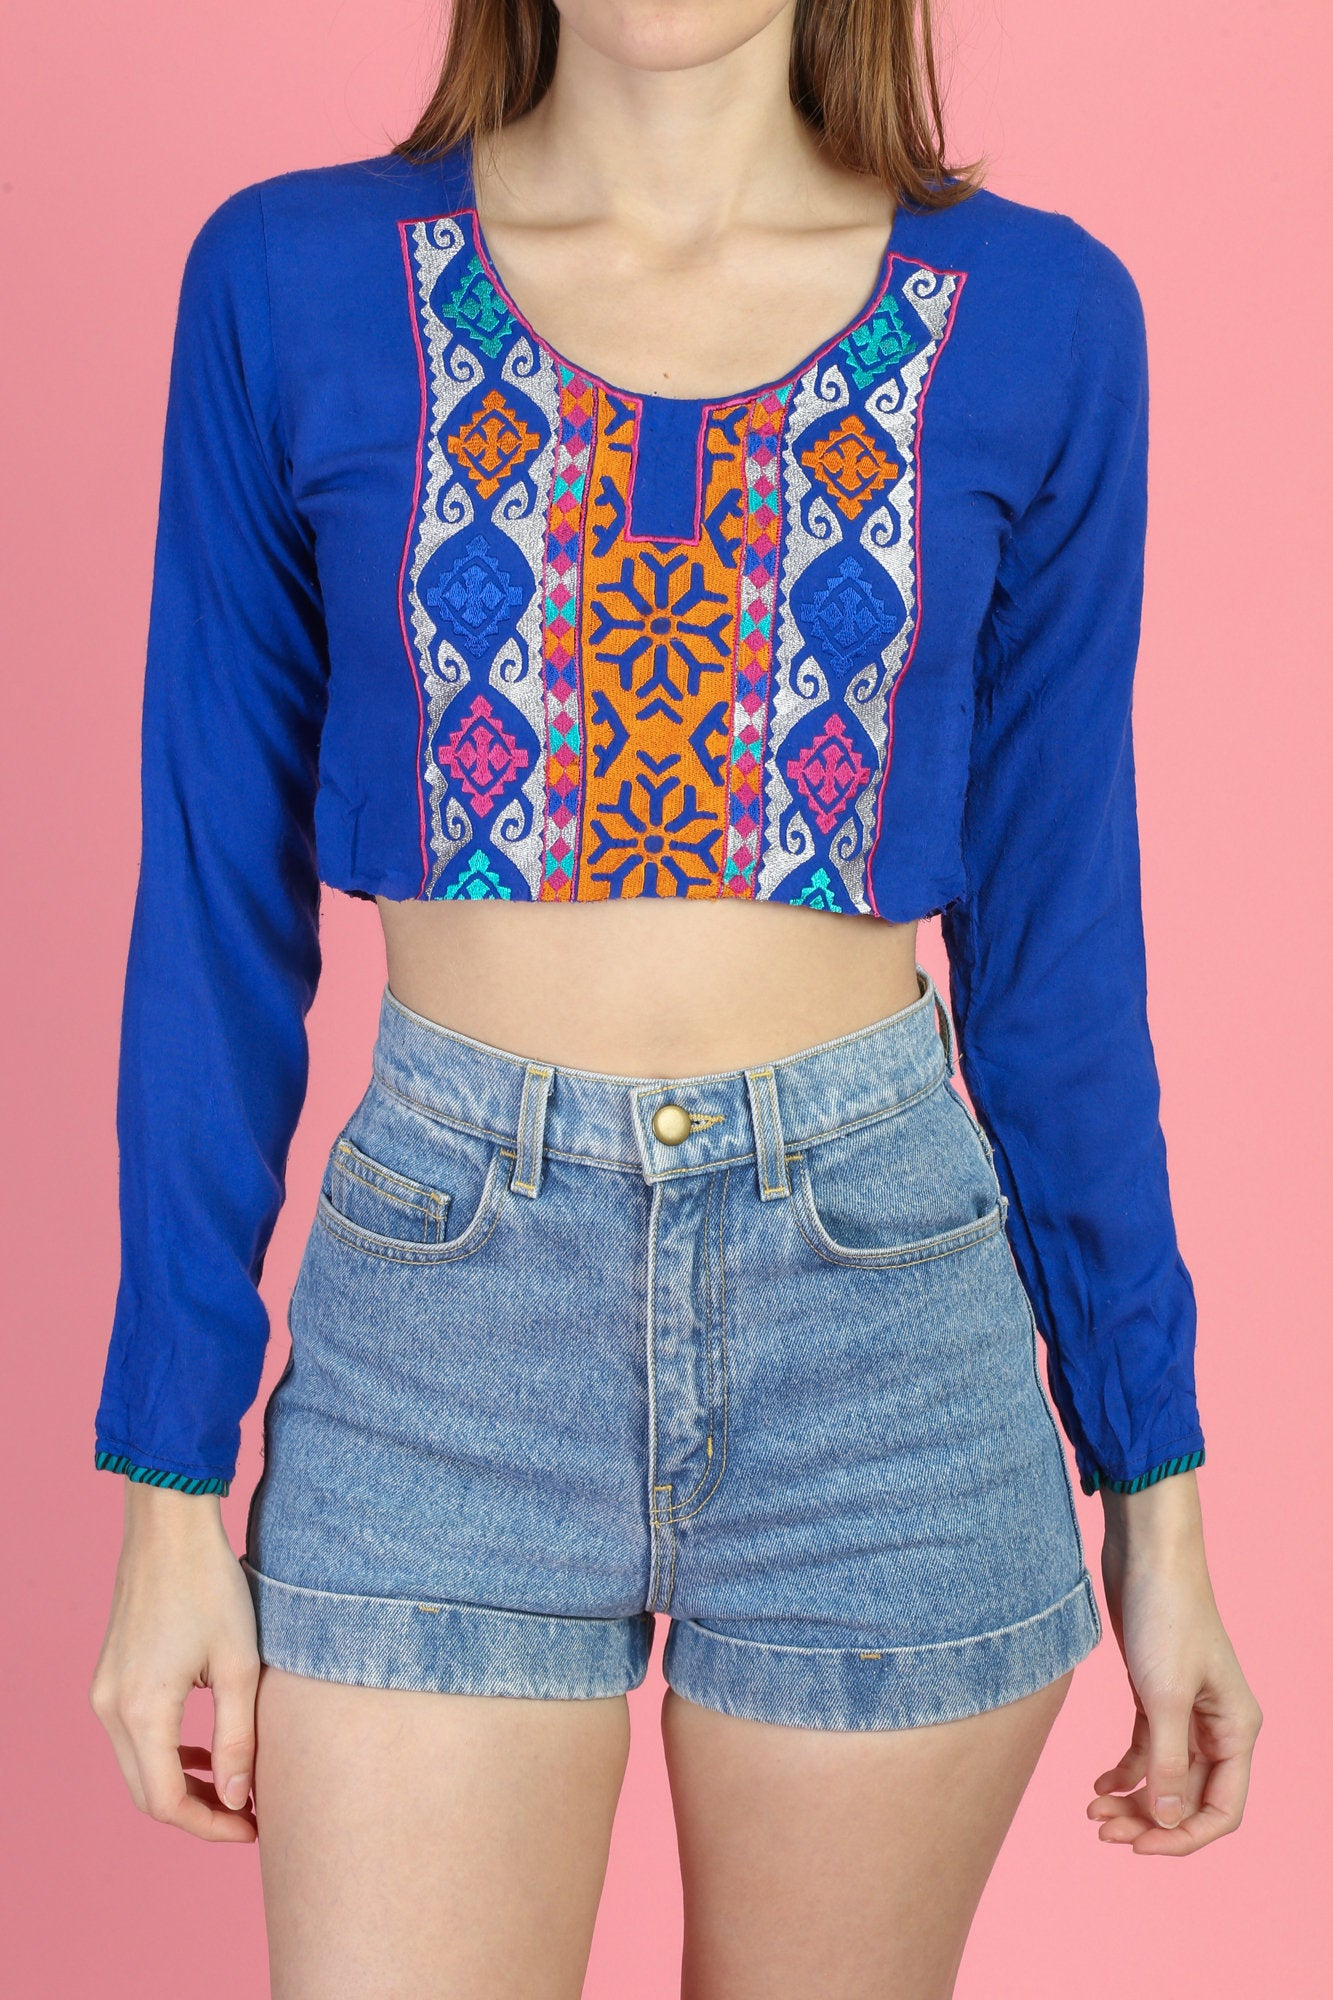 Vintage Boho Embroidered Crop Top - Extra Small